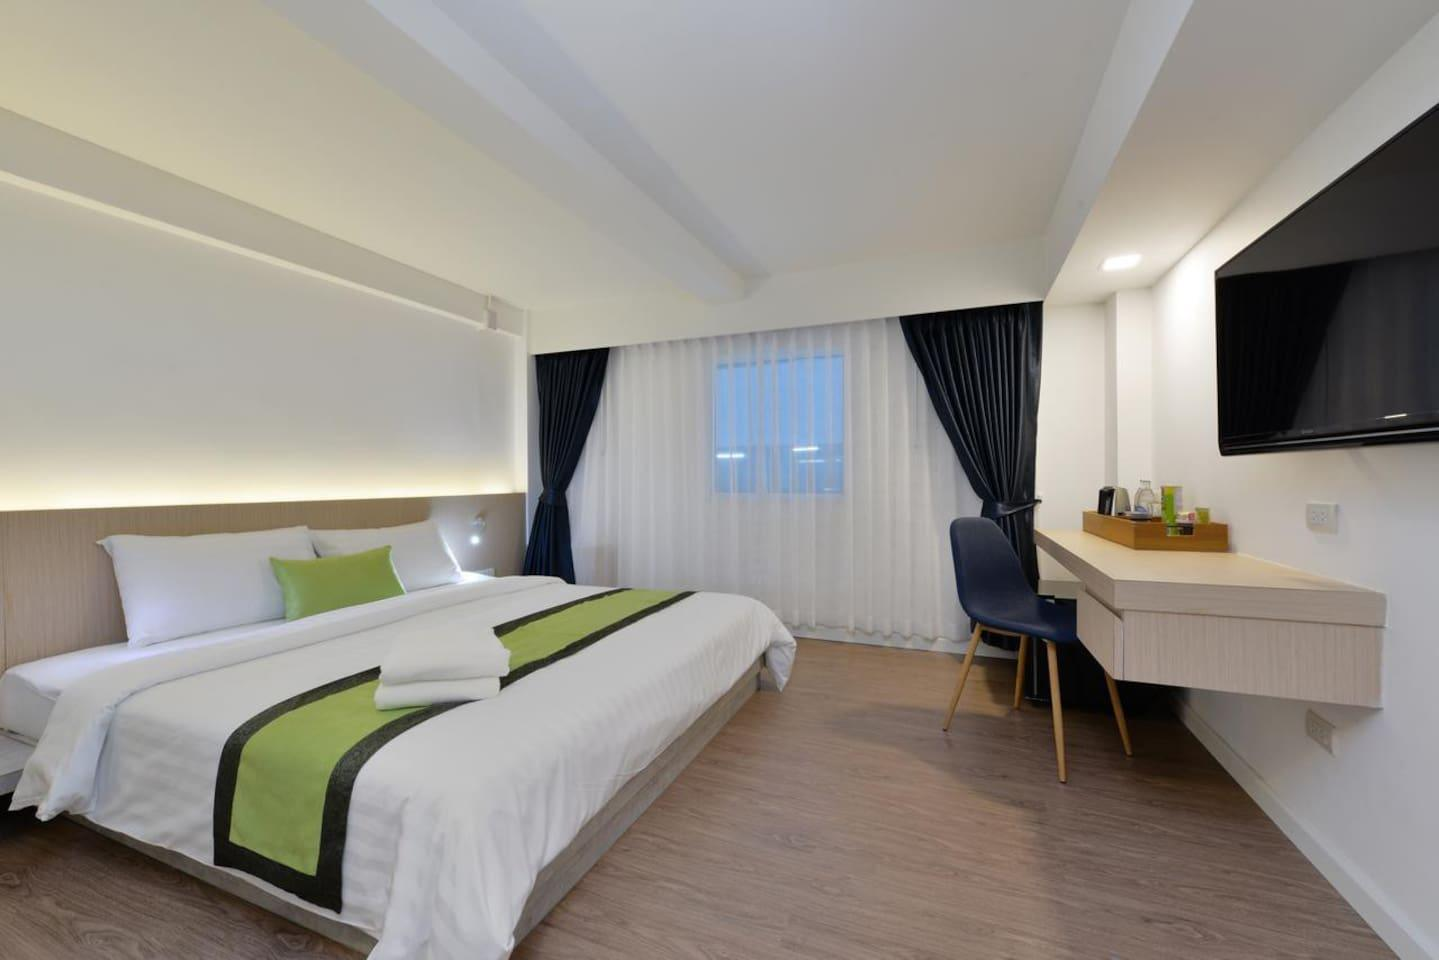 Deluxe Room 3 Minutes To Asoke BTS Station